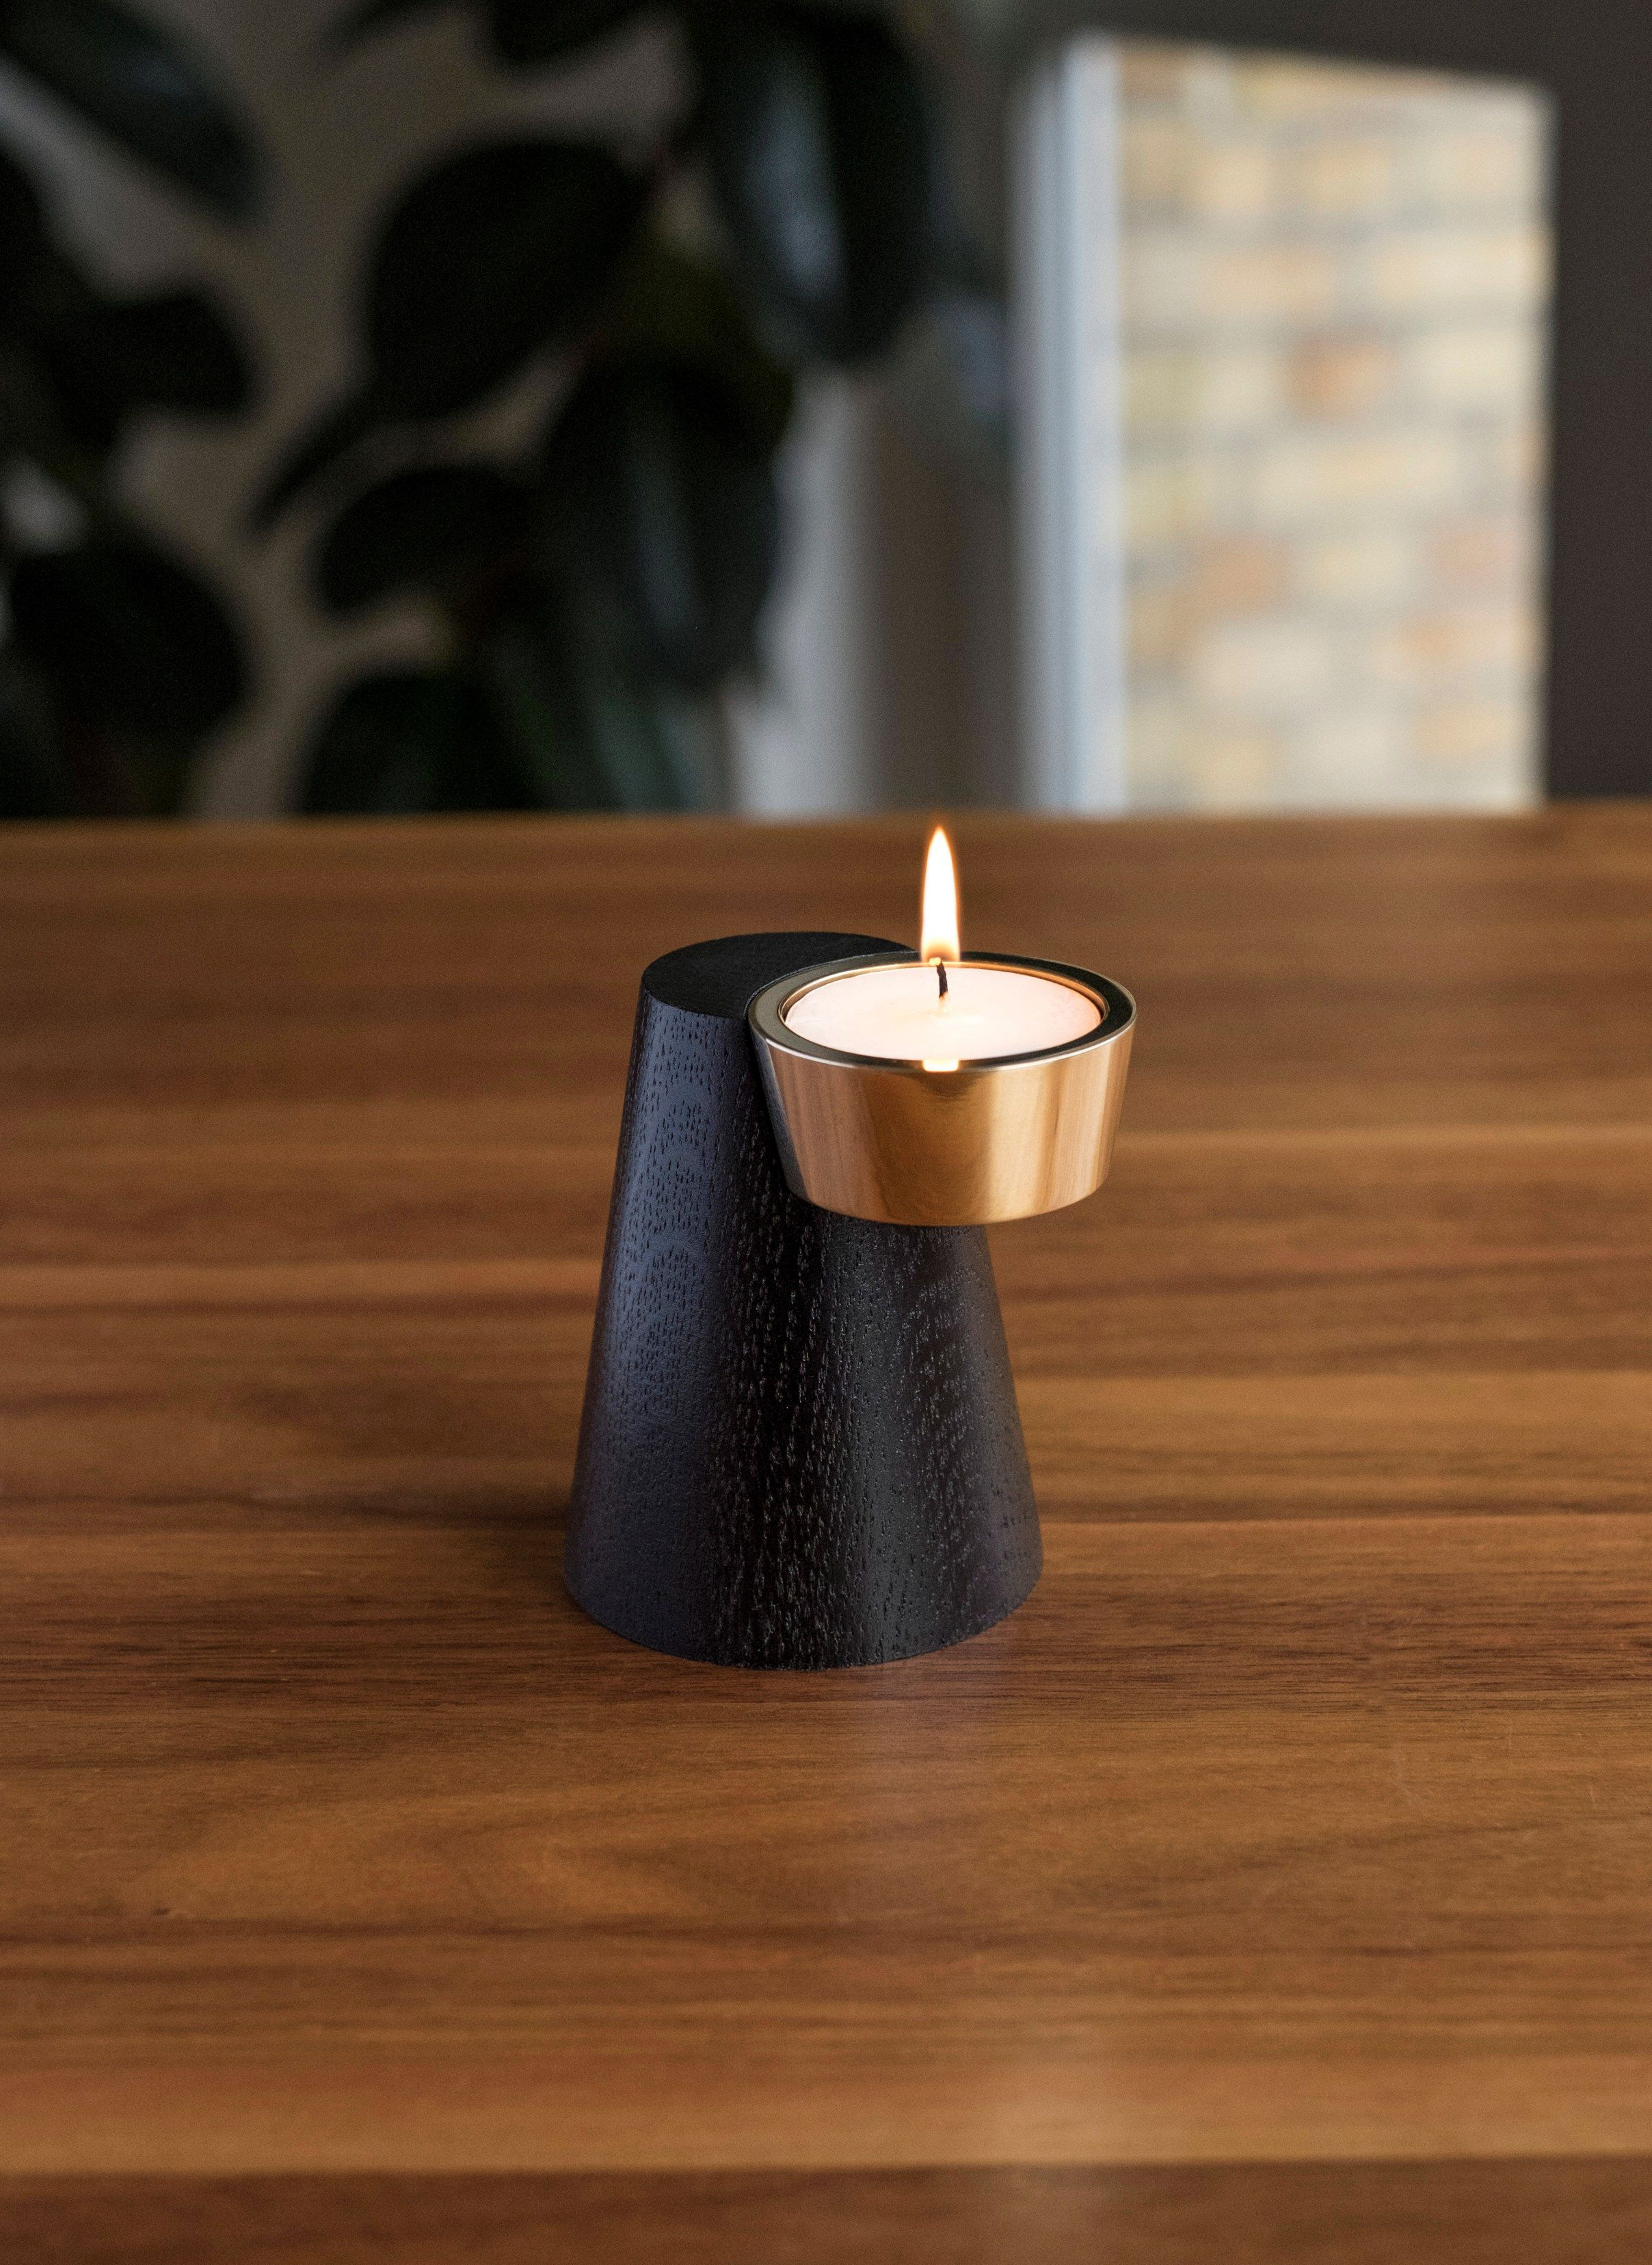 Wooden Candle Holder Faro By Caussa Design Andreas Kowalewski Candle Holders Wooden Candles Wooden Candle Holders